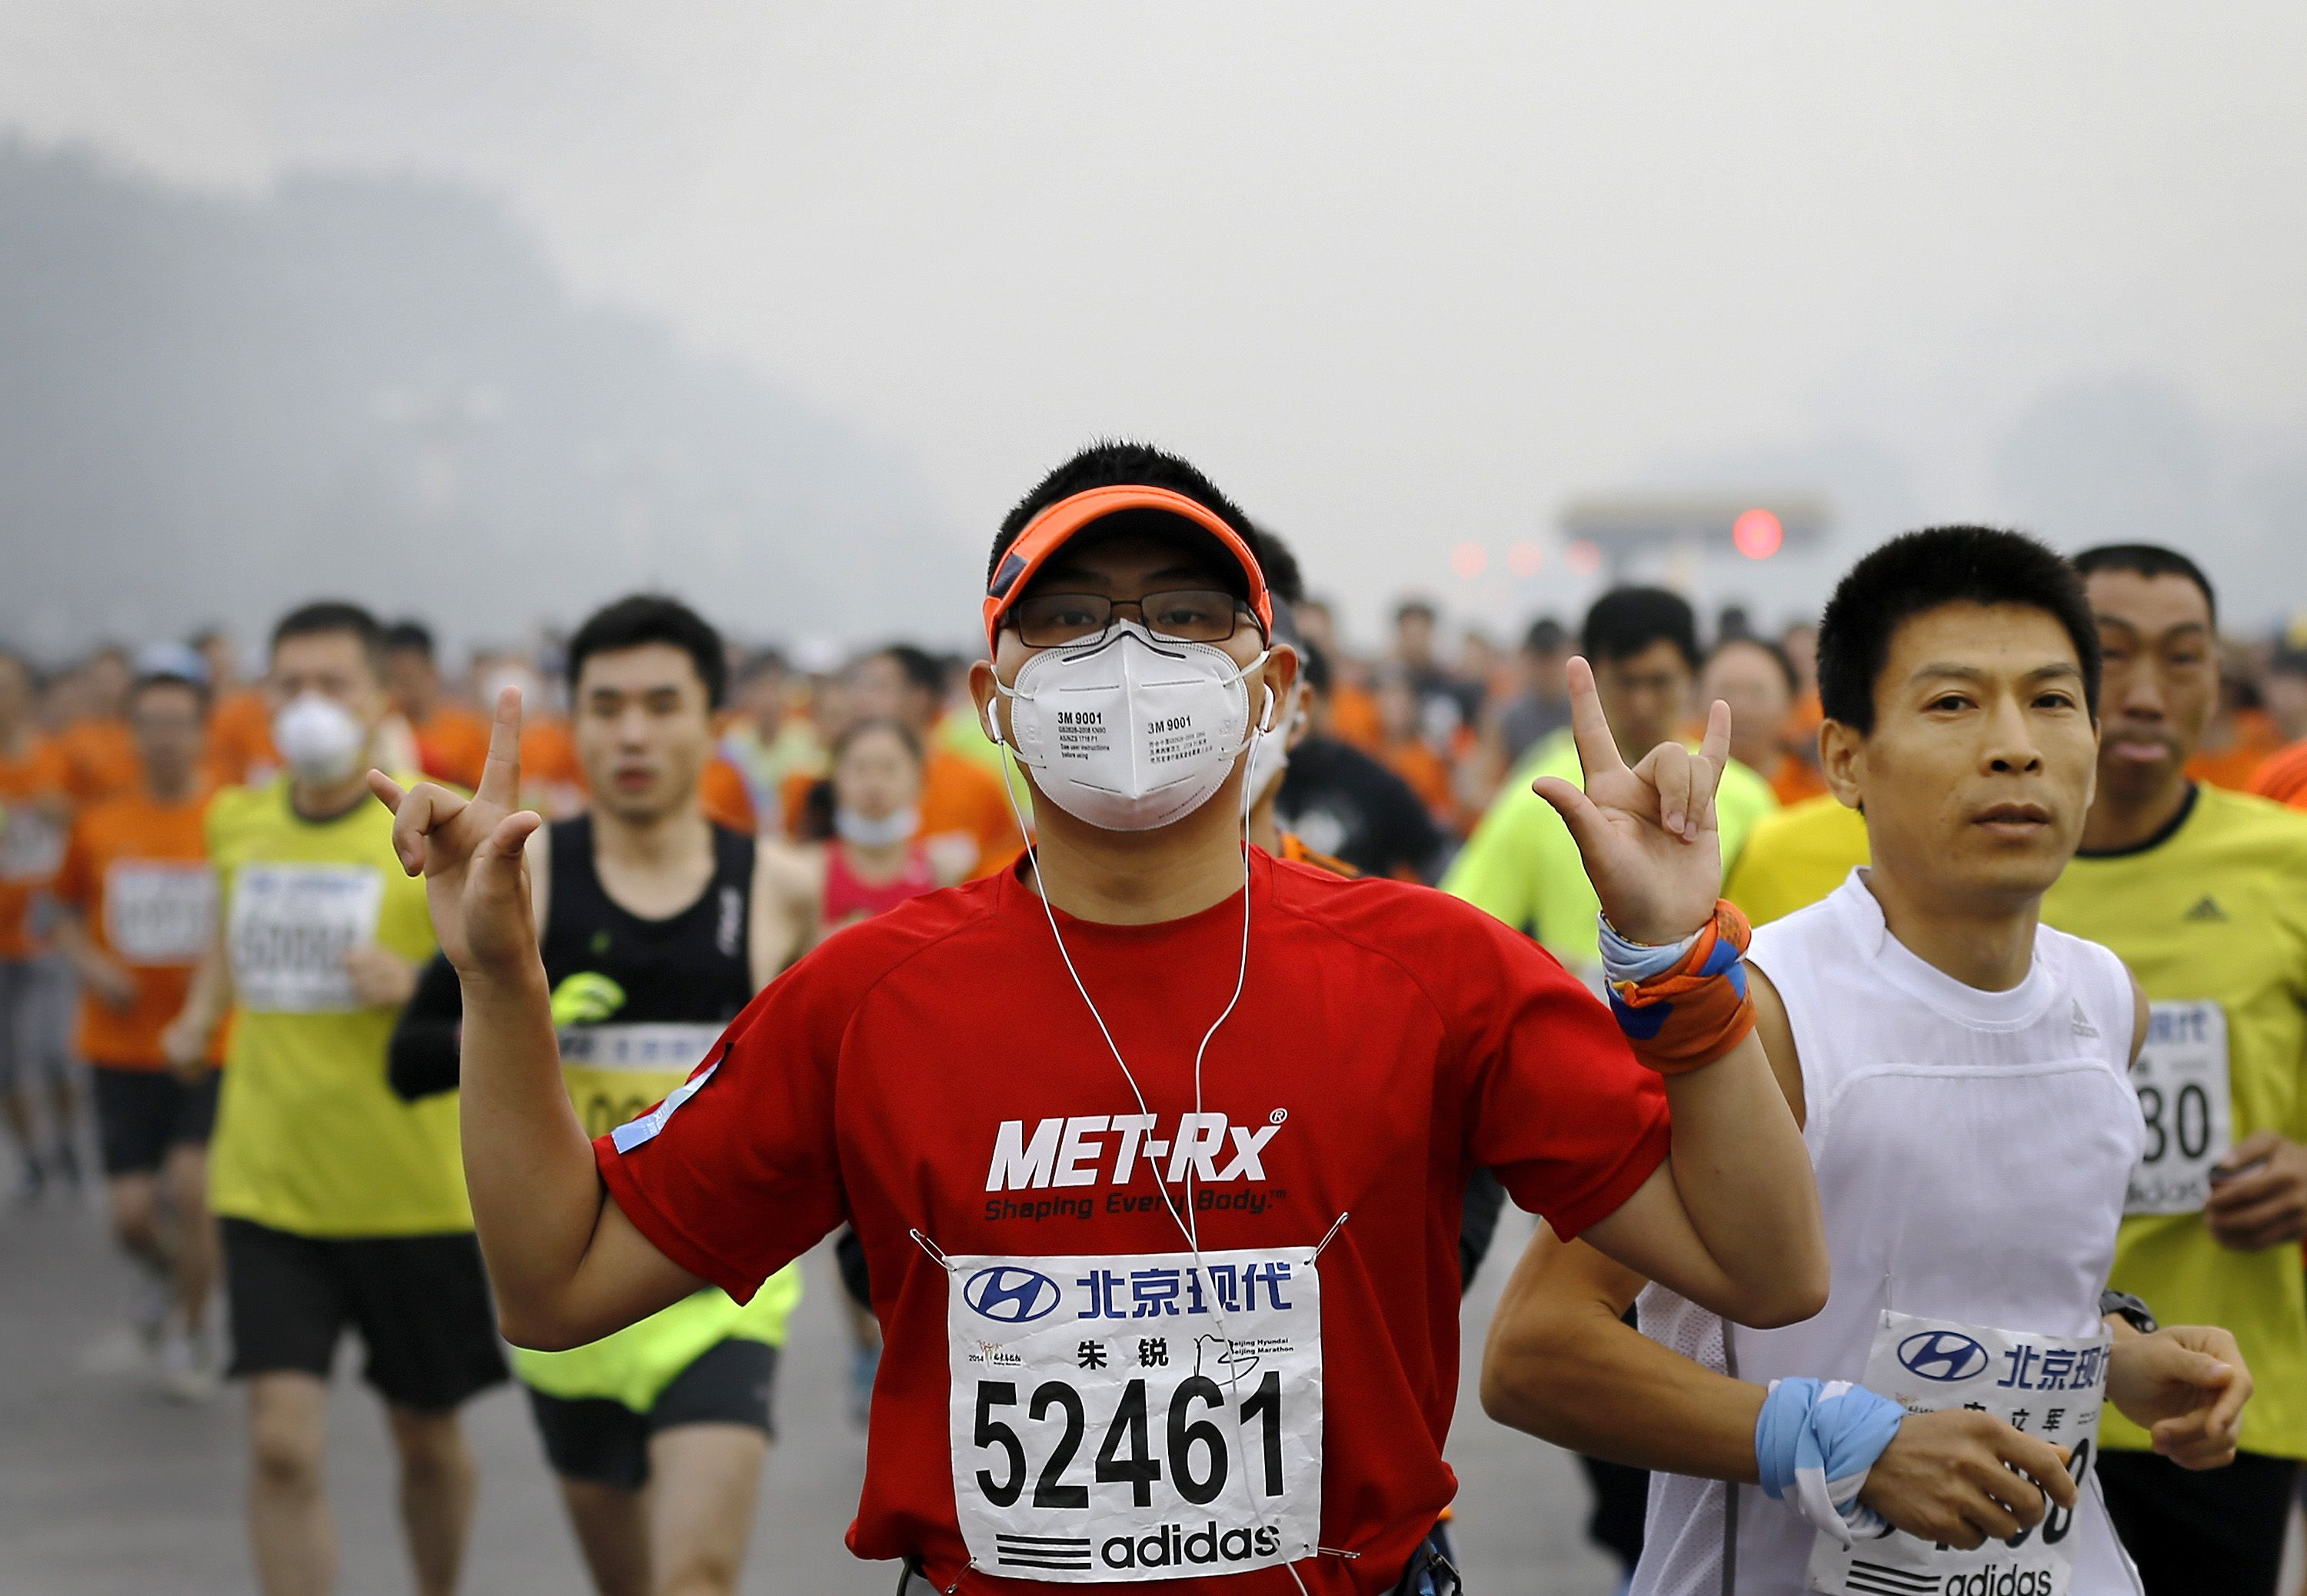 A runner wearing a mask to protect himself from pollutants gestures as he and others jog past Chang'an Avenue near Tiananmen Square shrouded in haze at the start of 2014 Beijing International Marathon in Beijing, China Sunday, Oct. 19, 2014. (AP Photo/Andy Wong)